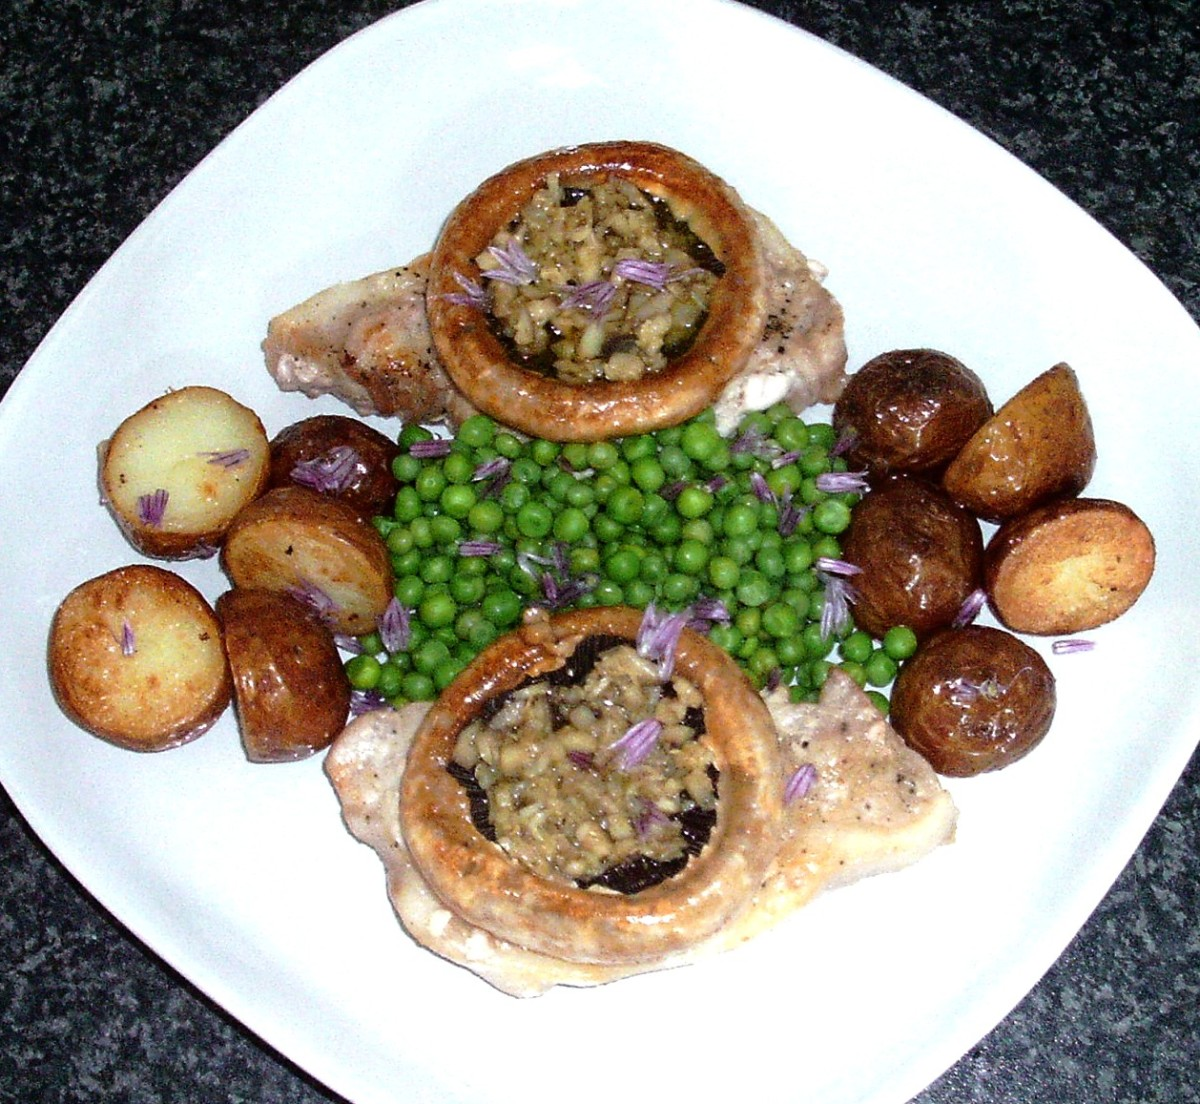 Pan fried pork loin fillets are served with garlic stuffed mushrooms, potatoes and peas